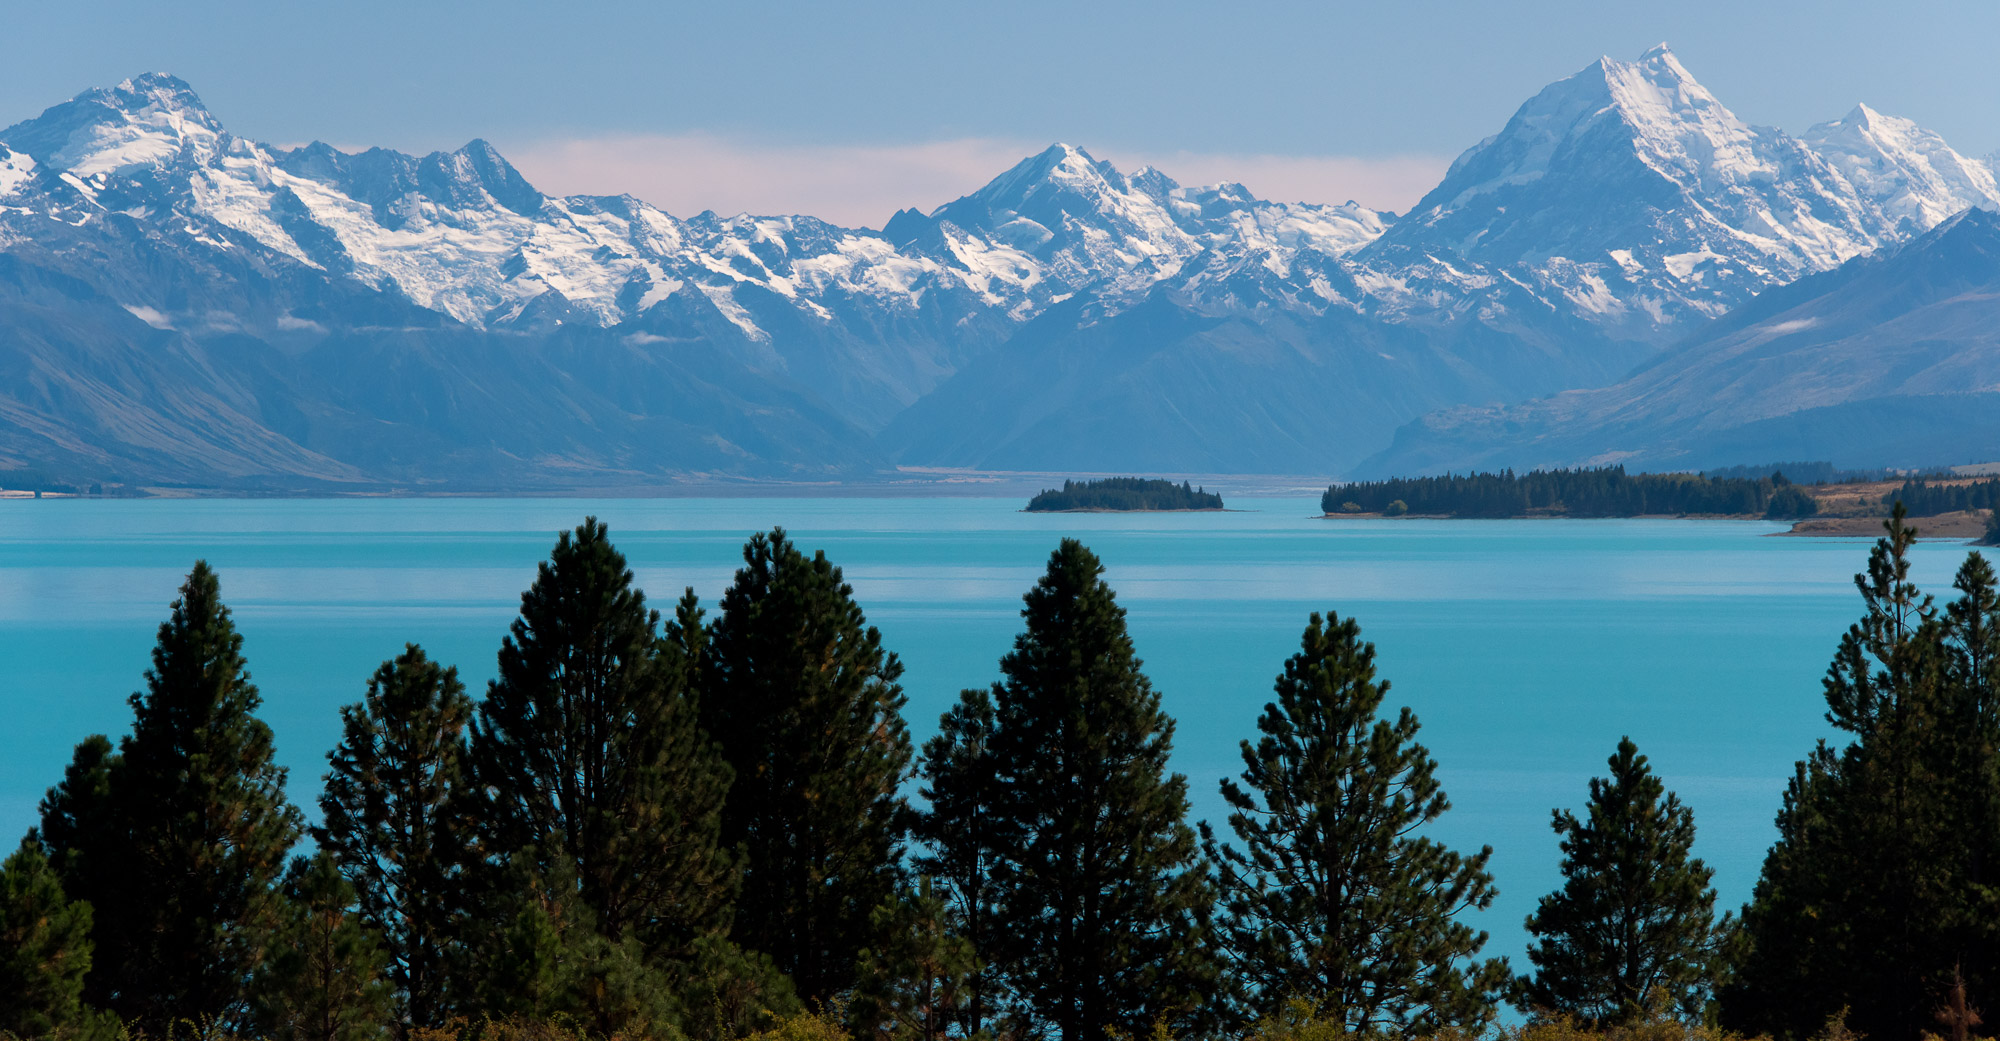 Southern Alps and Lake Tekapo - New Zealand